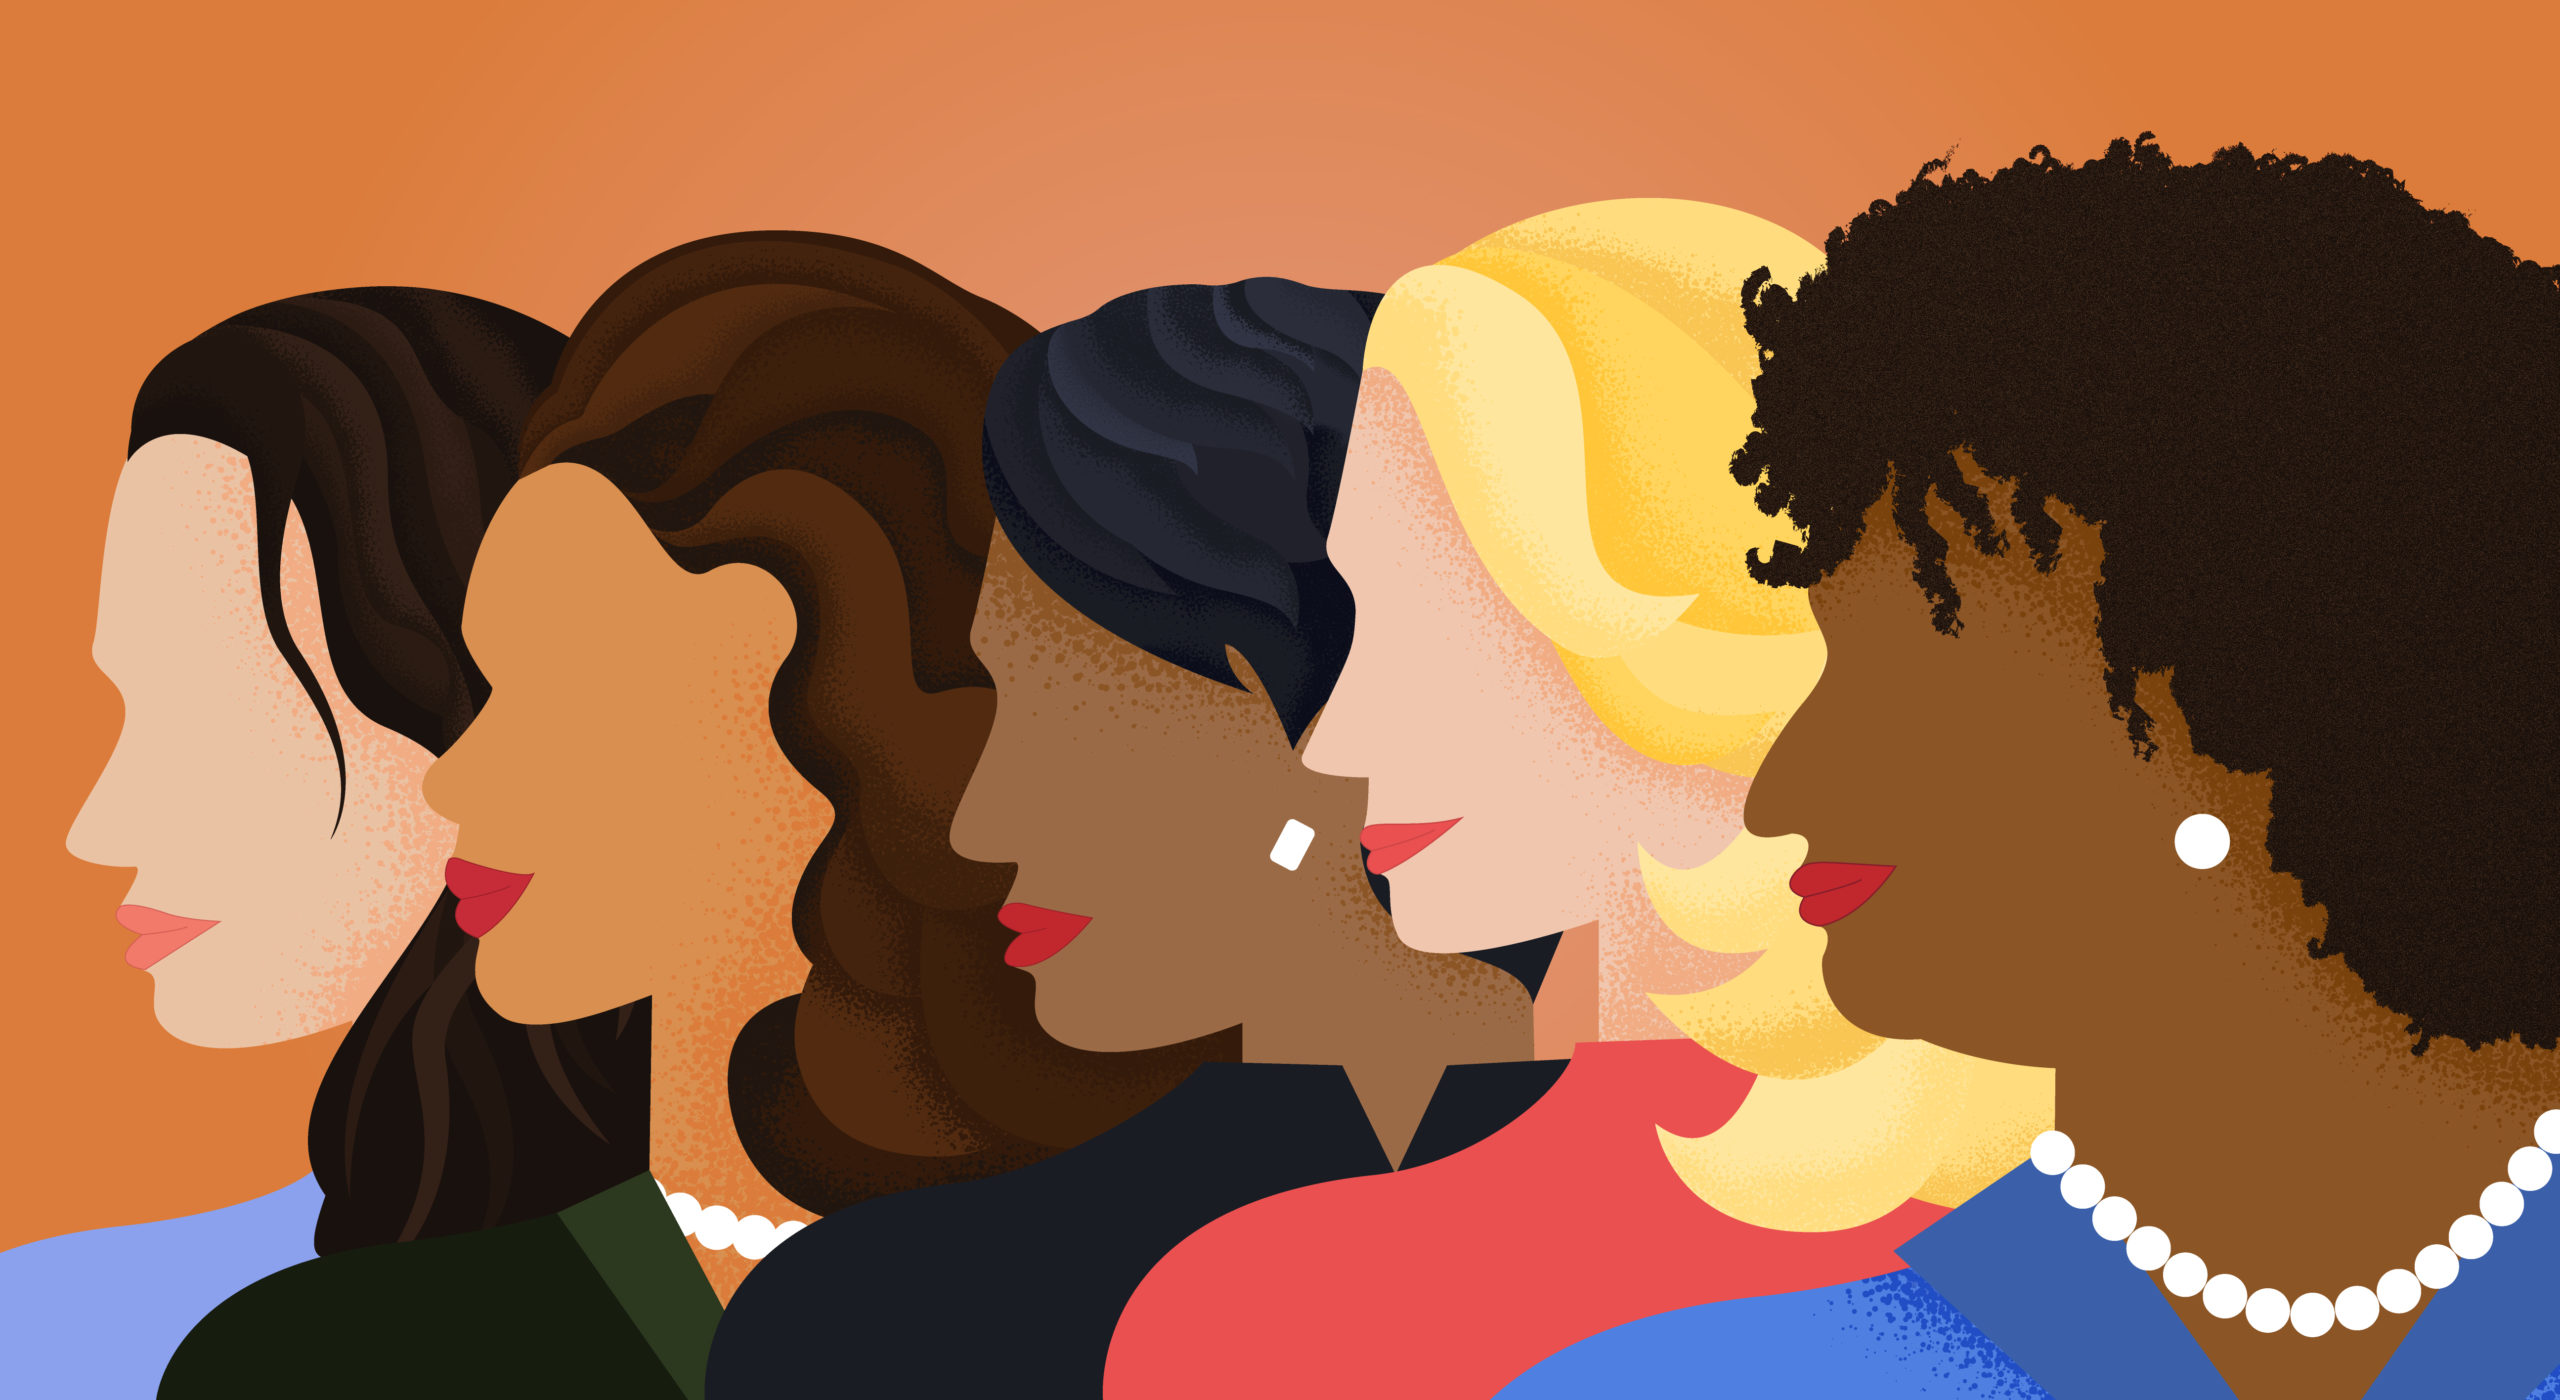 women profiles of all colors